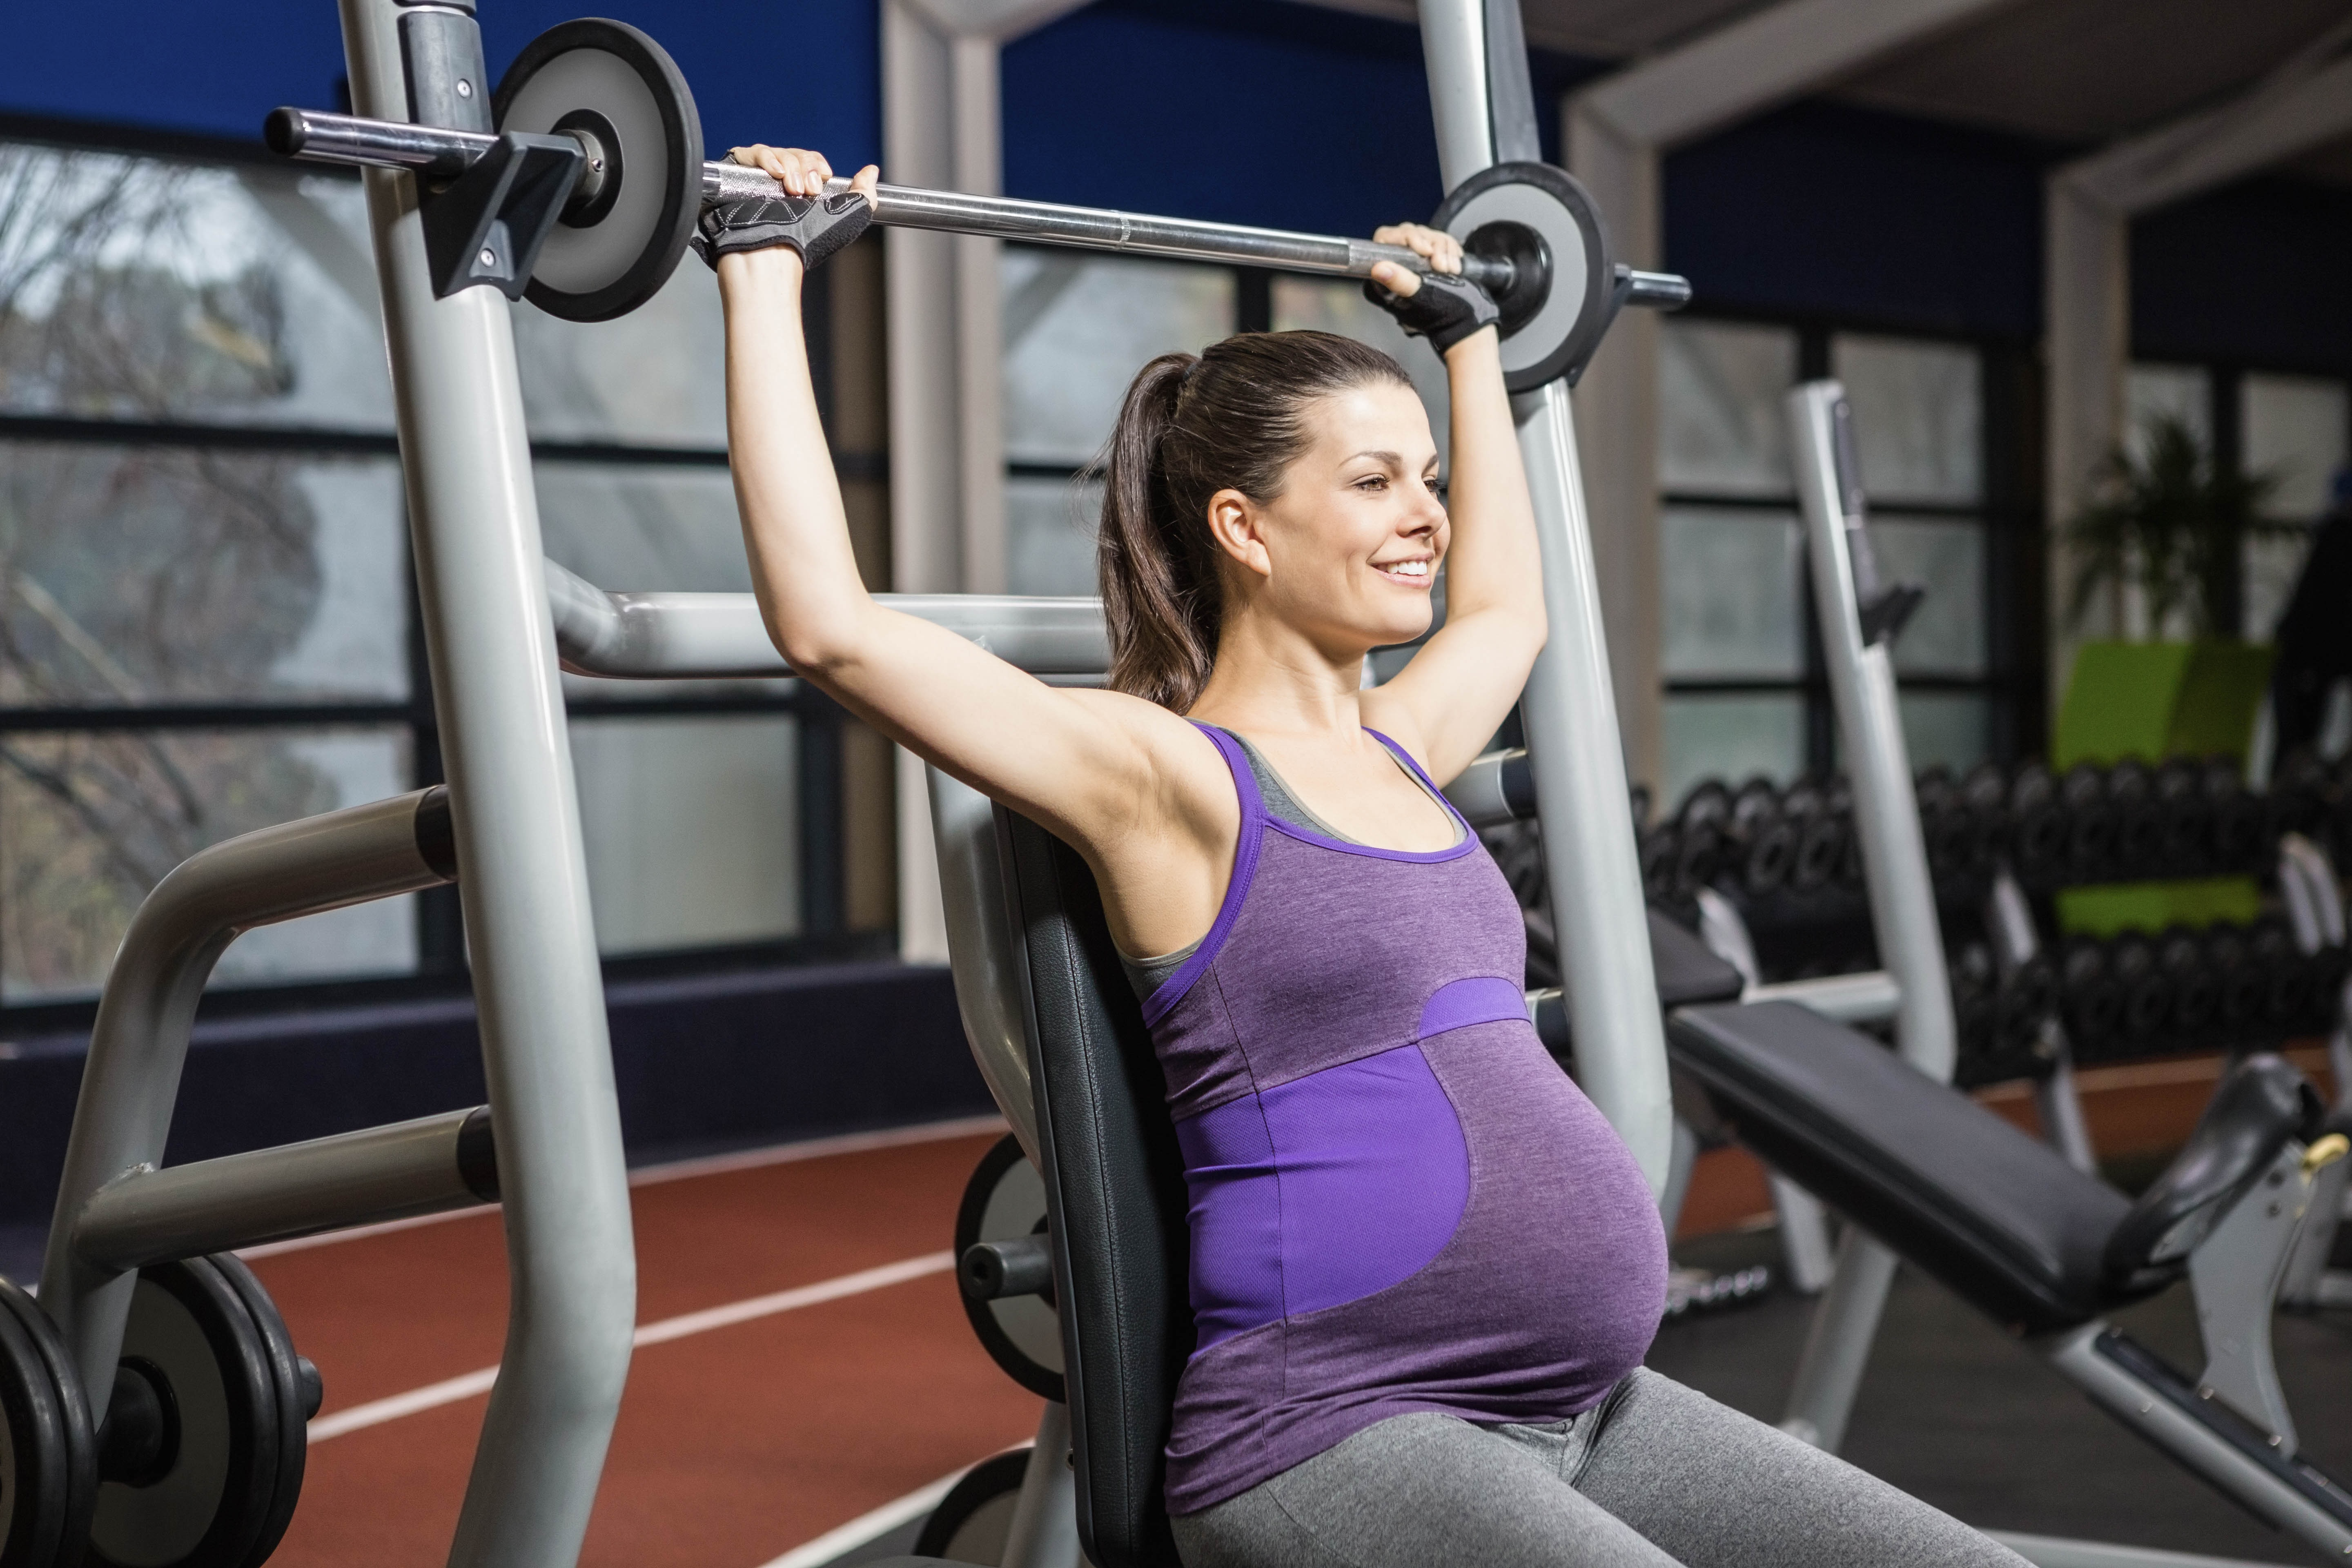 is weightlifting safe during pregnancy the pulse